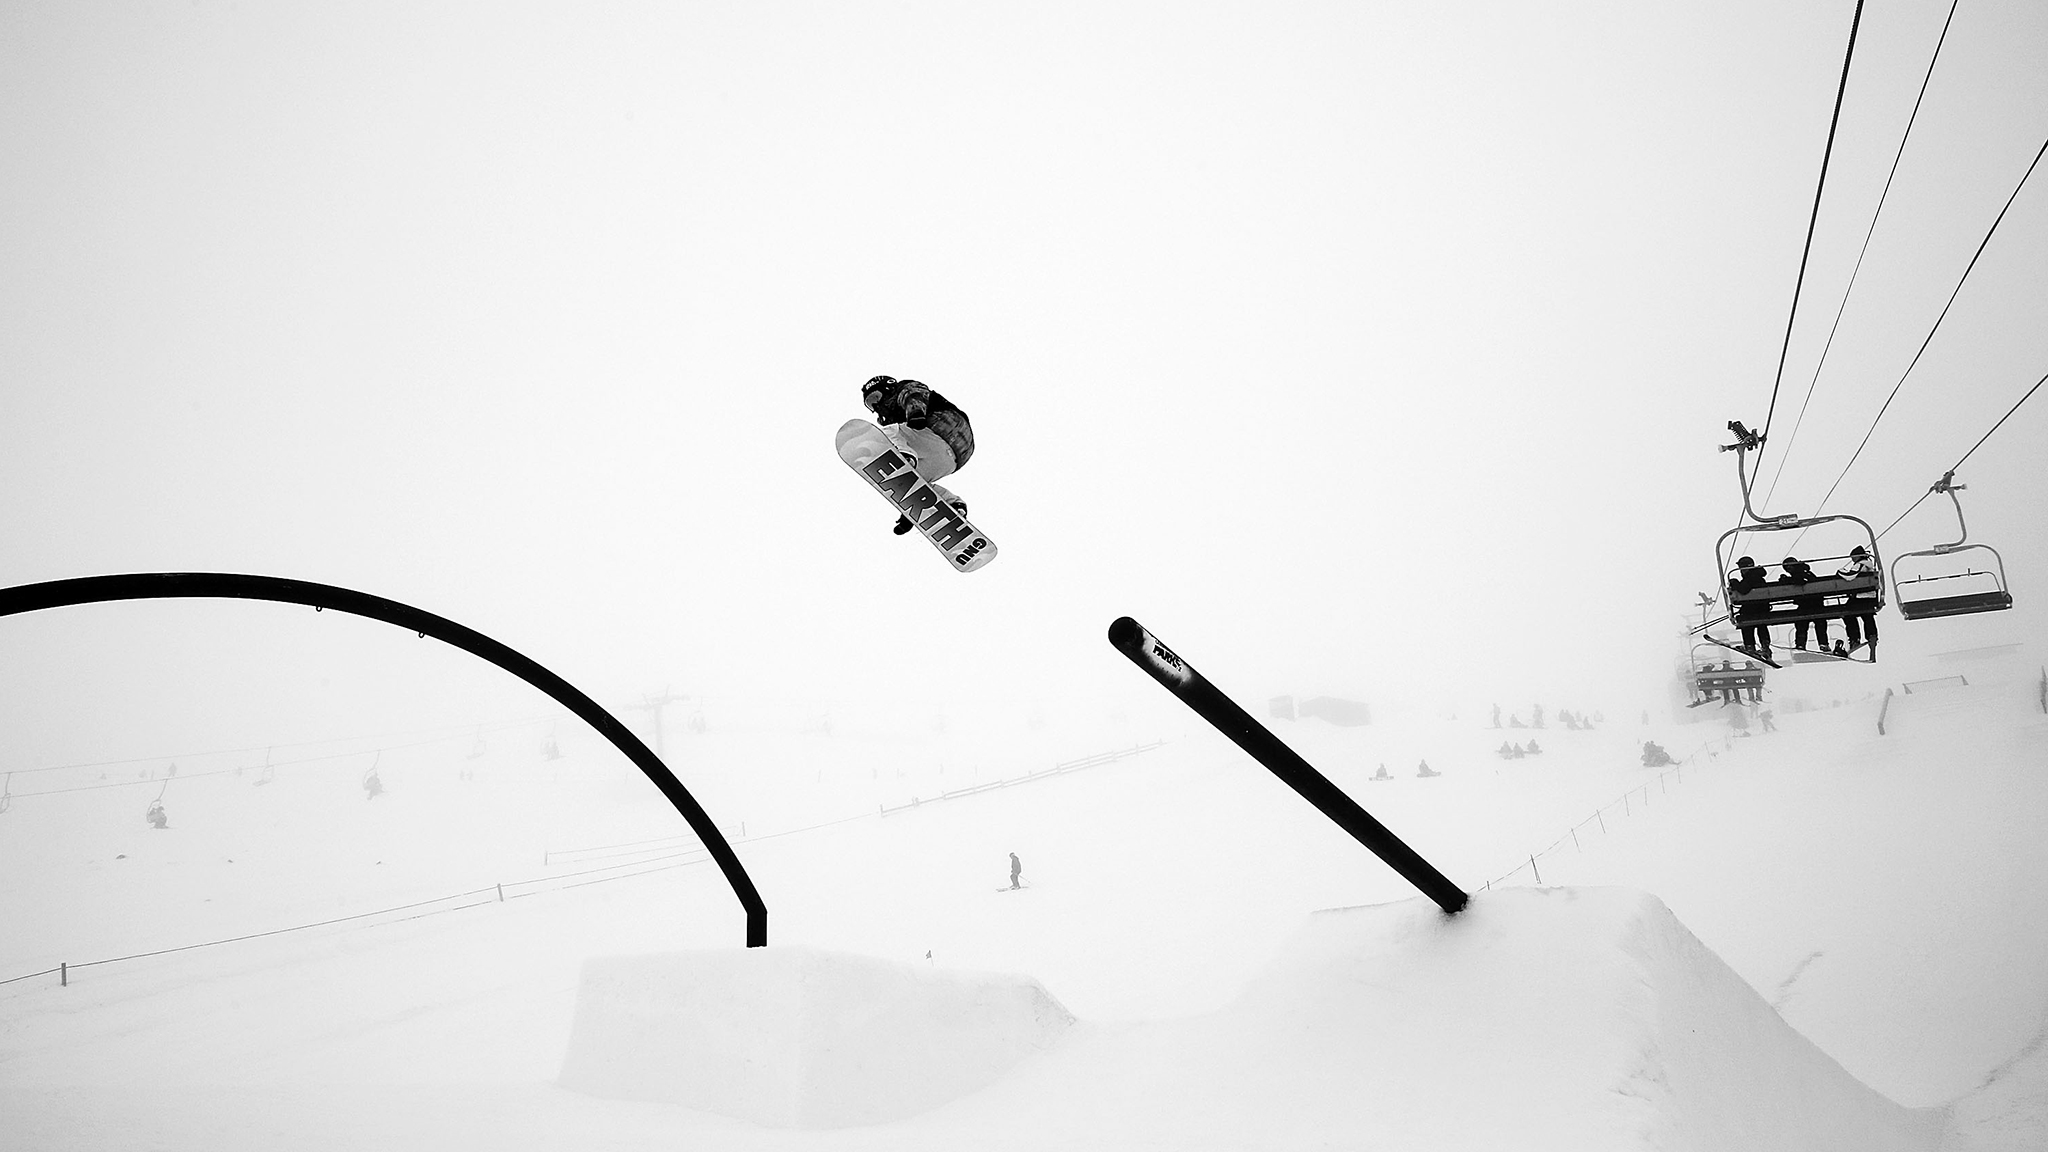 Jamie Anderson navigates the slope course in adverse weather conditions at the FIS World Cup final in New Zealand. The X Games Aspen gold medalist won the event on Sunday, and the men's event was cancelled because of the weather.